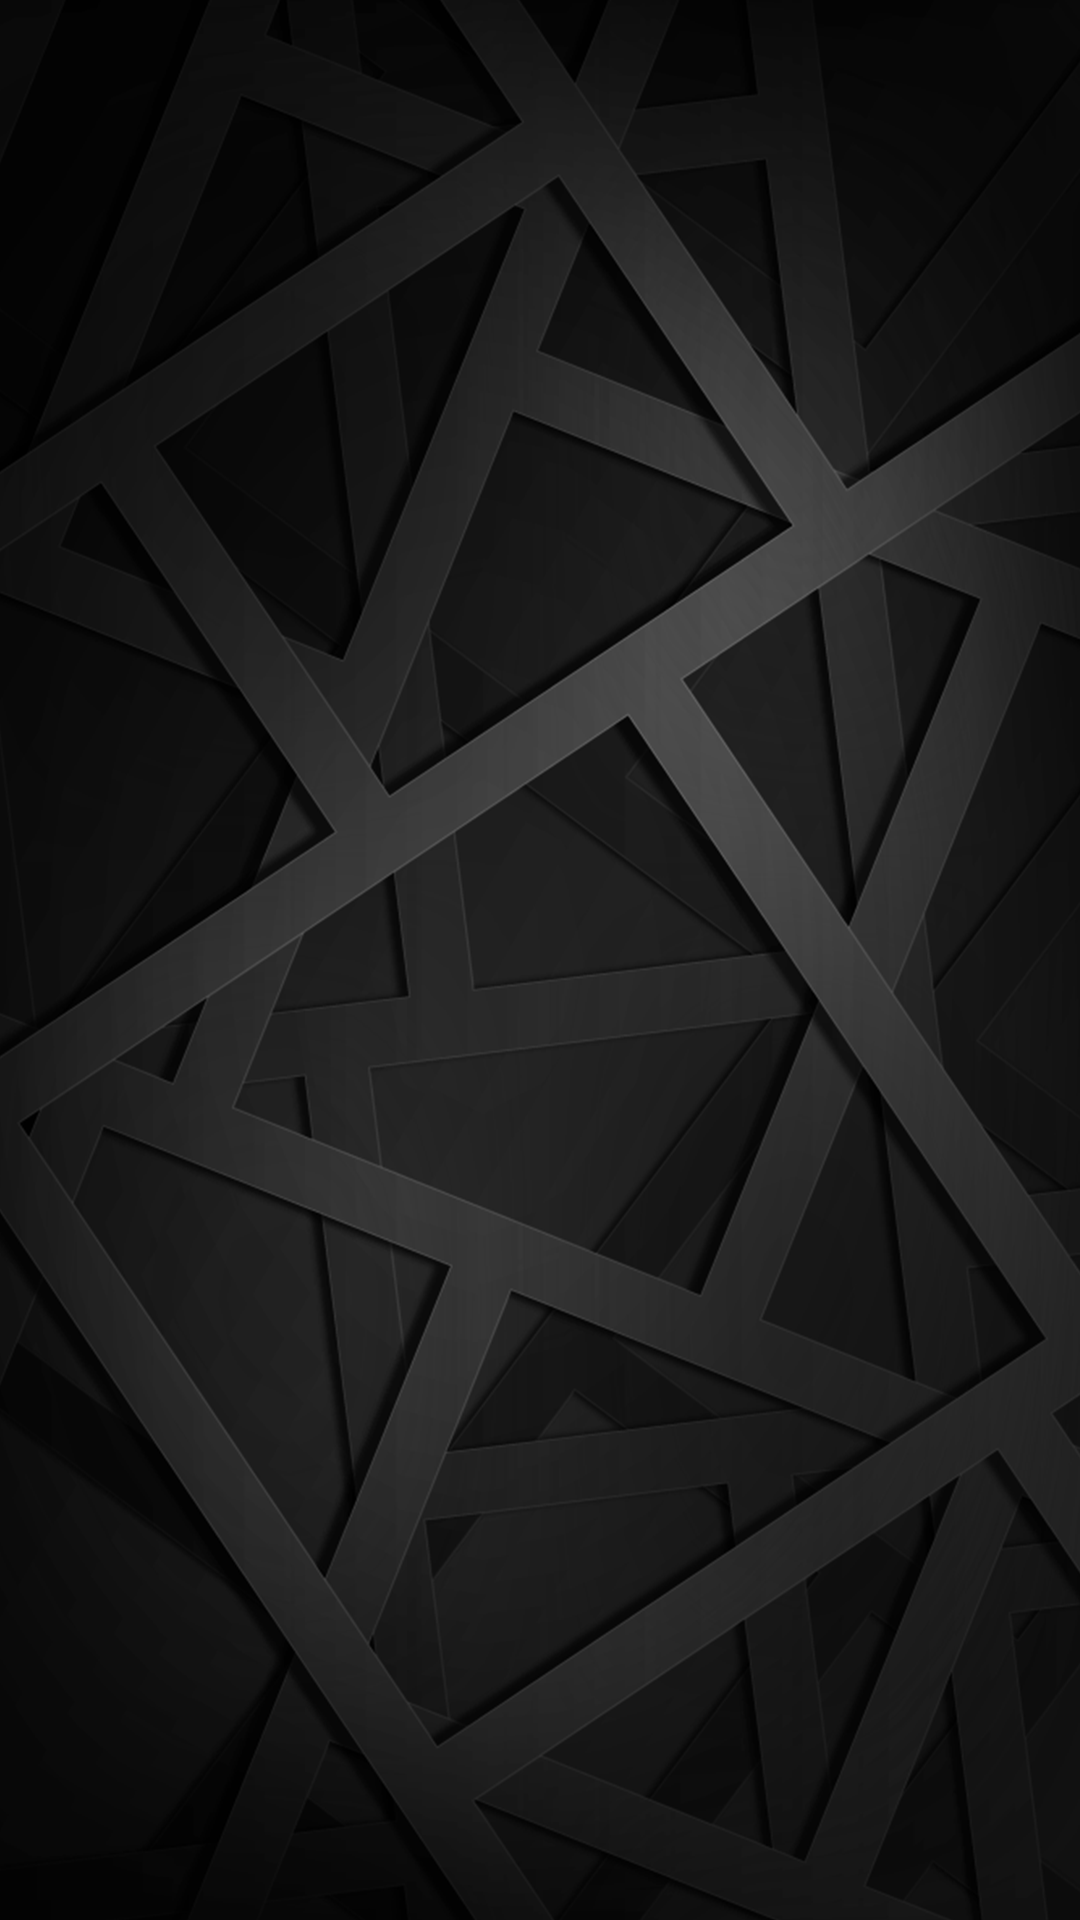 1080x1920 Ultra HD Geometric Black Wallpaper For Your Mobile Phone ...0111